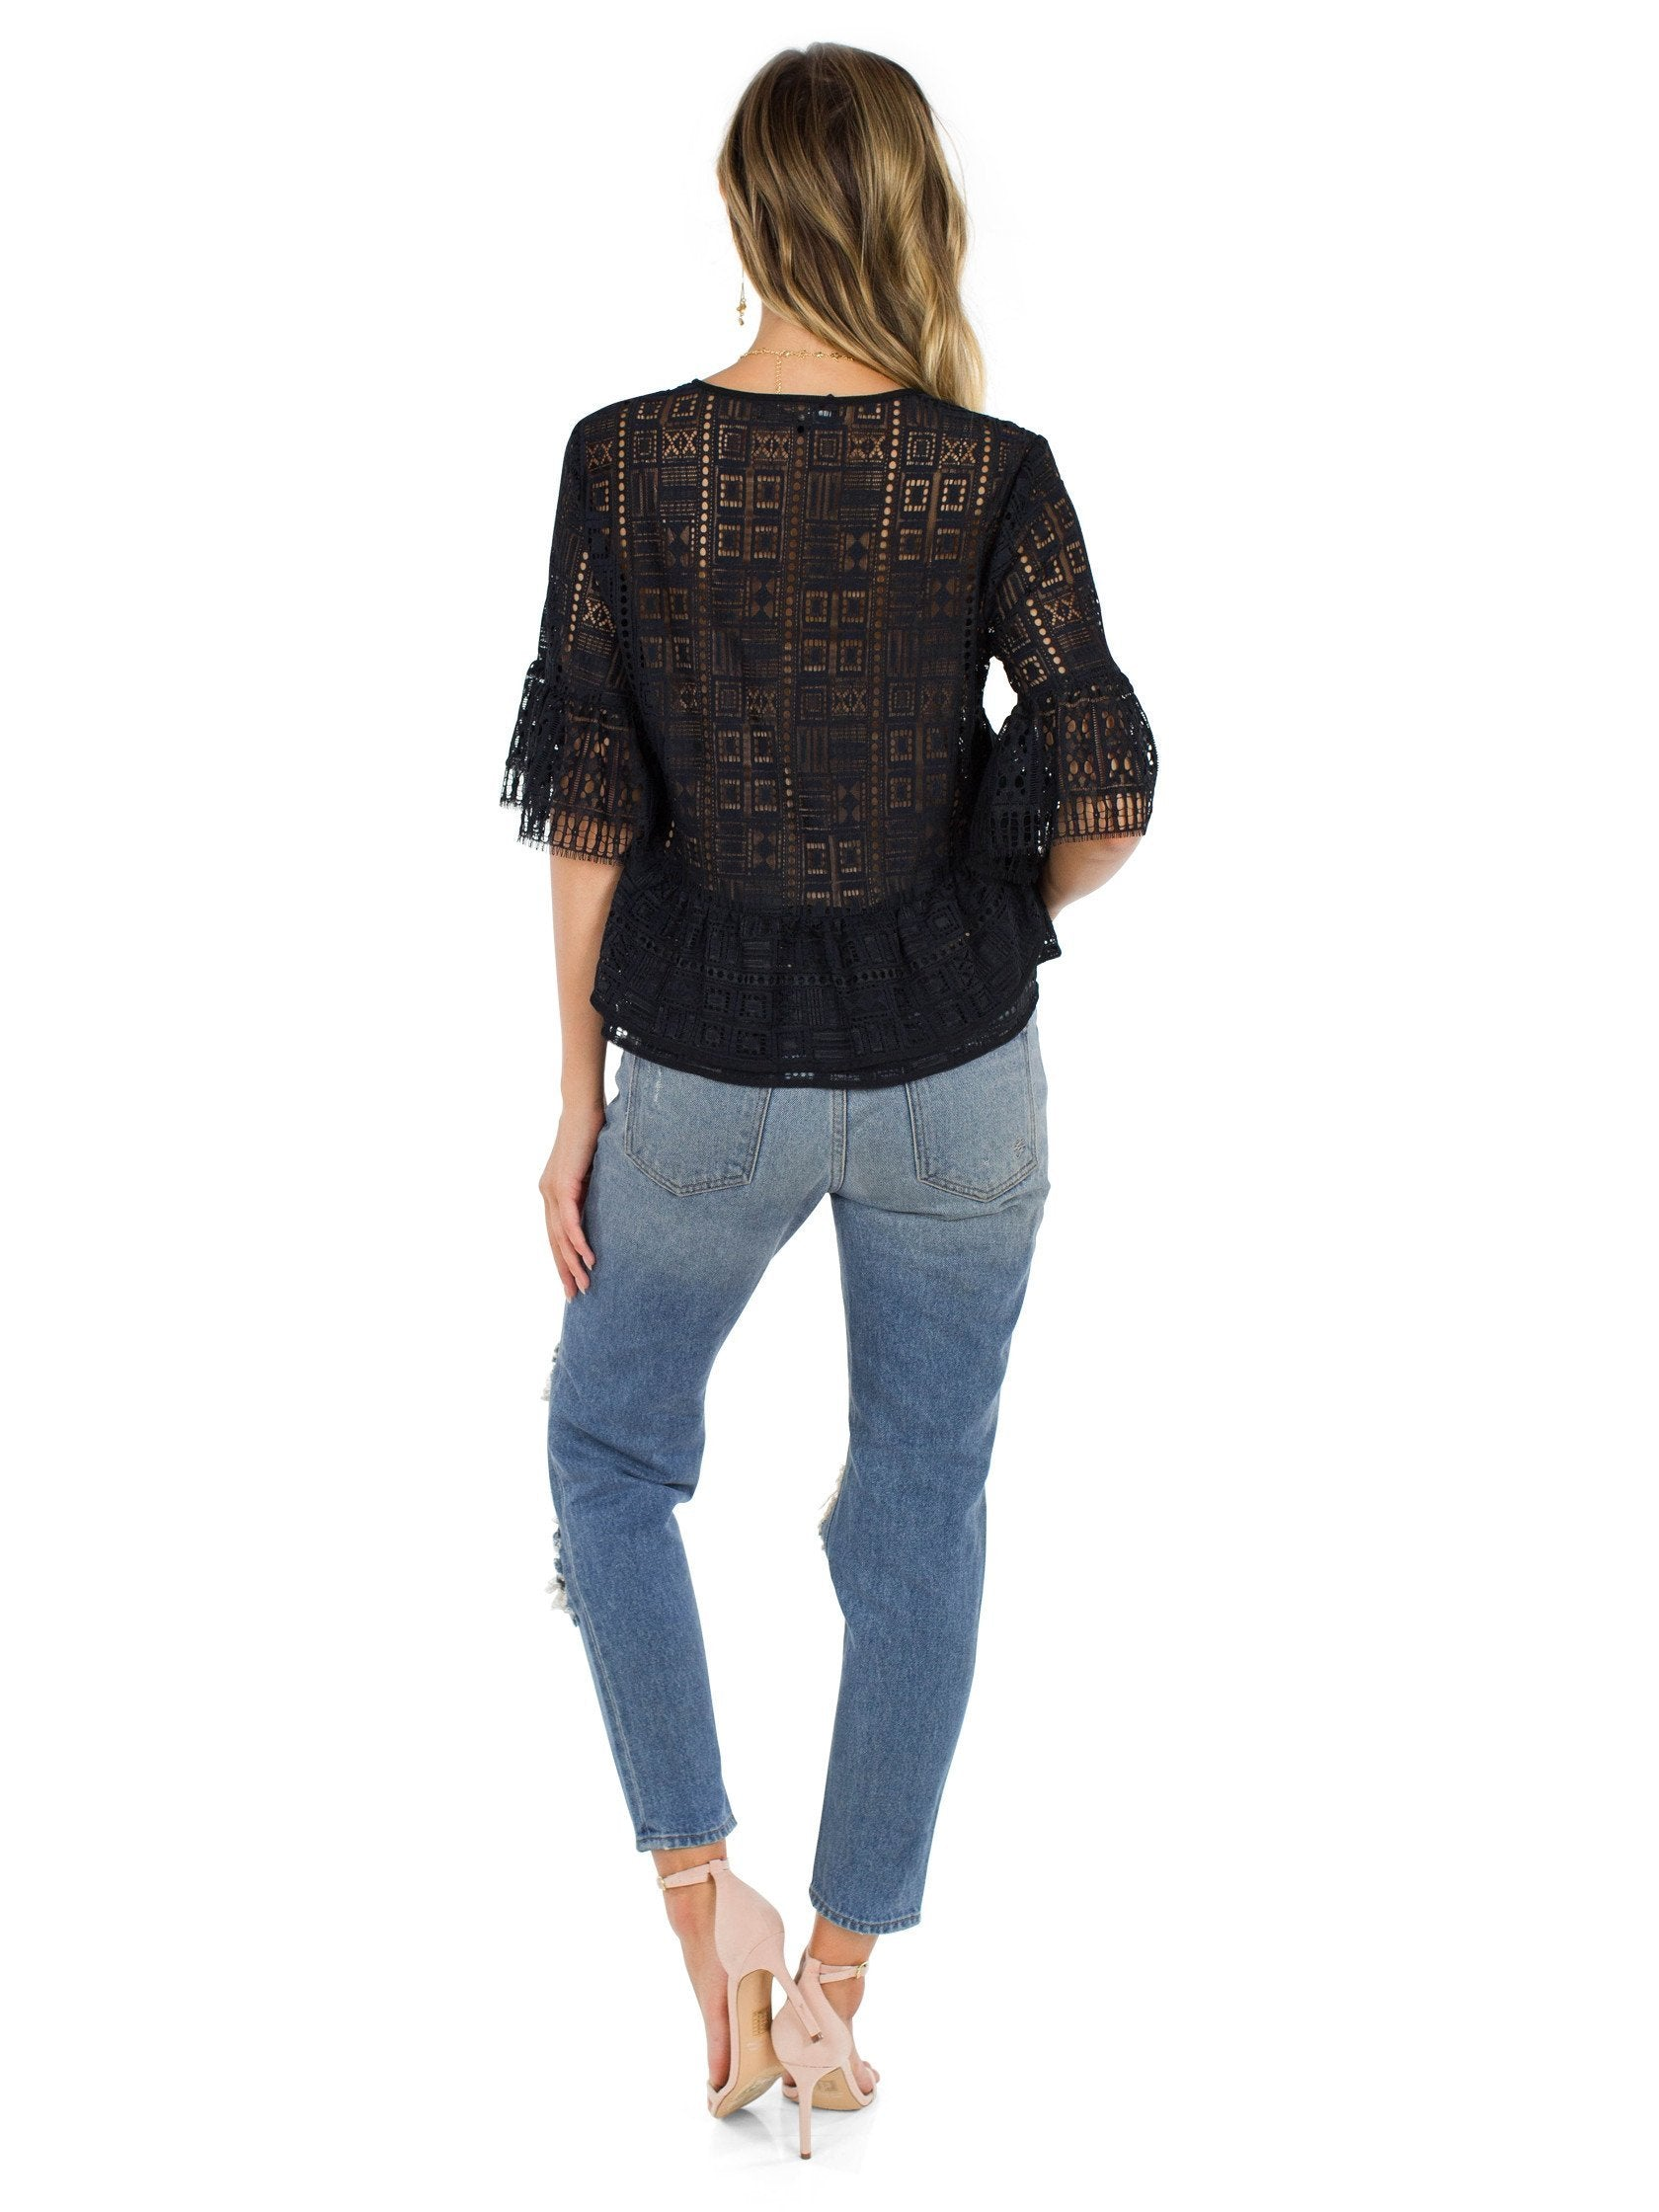 Women outfit in a top rental from BCBGMAXAZRIA called Immane Ruffled Lace Top